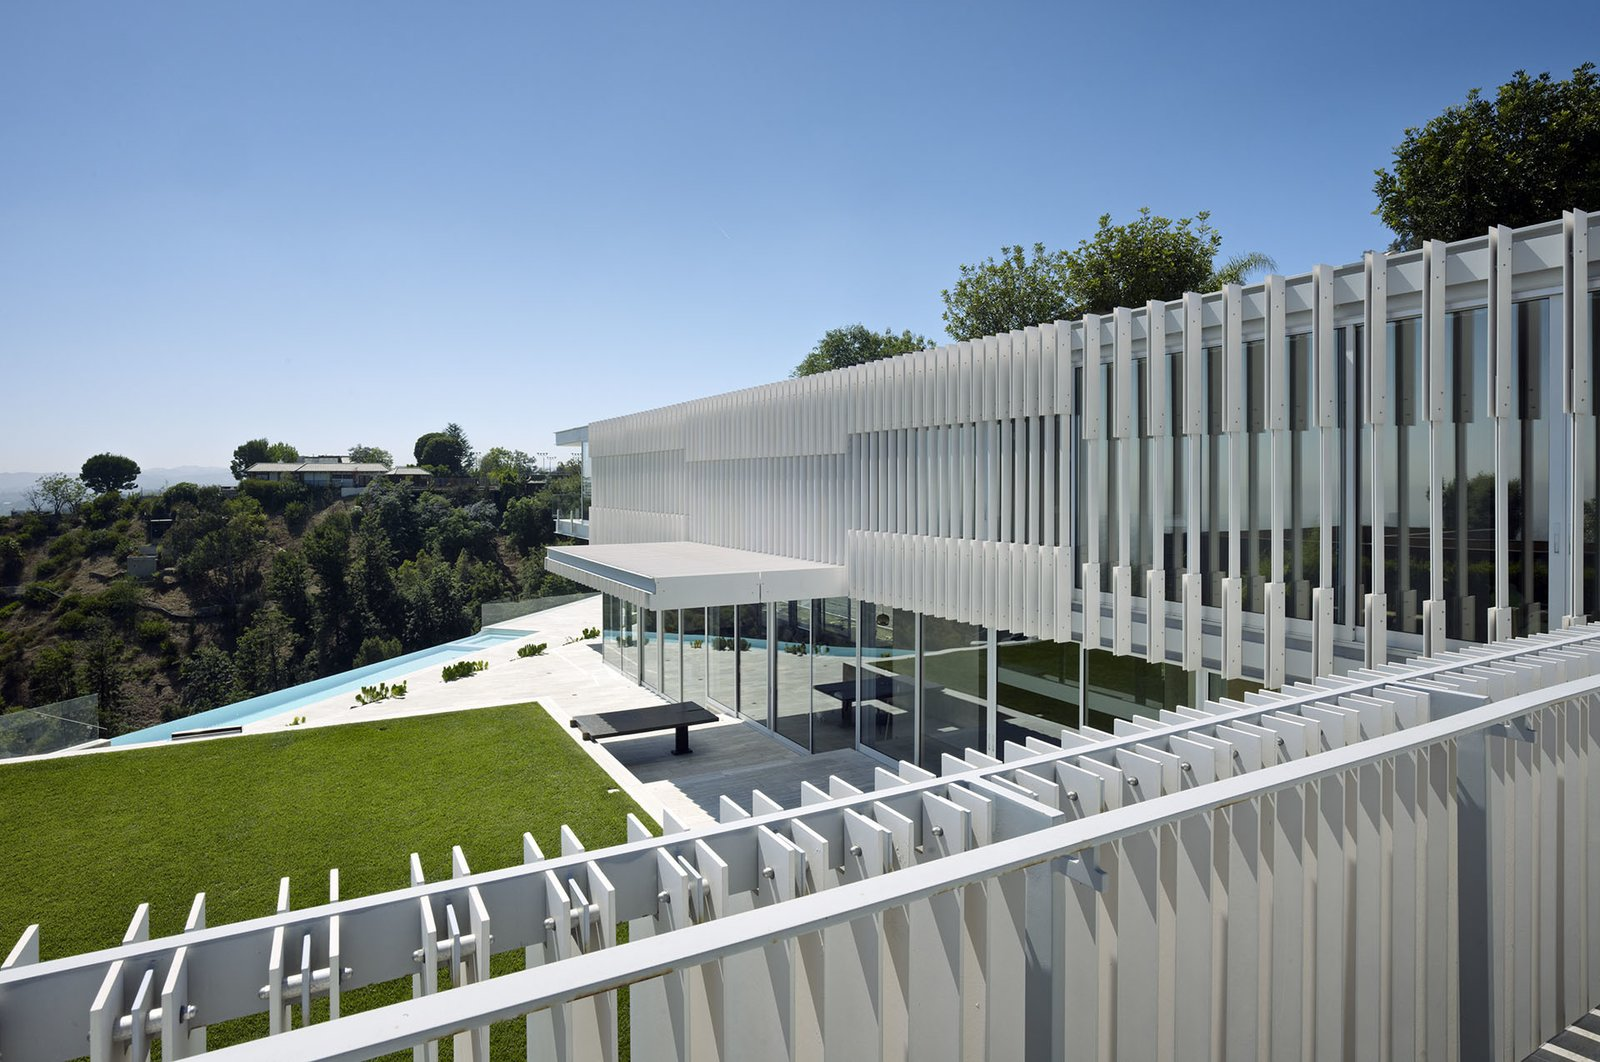 In plan, the structure is an L-shape, embracing the view across its angled infinity pool.  Oberfeld Residence